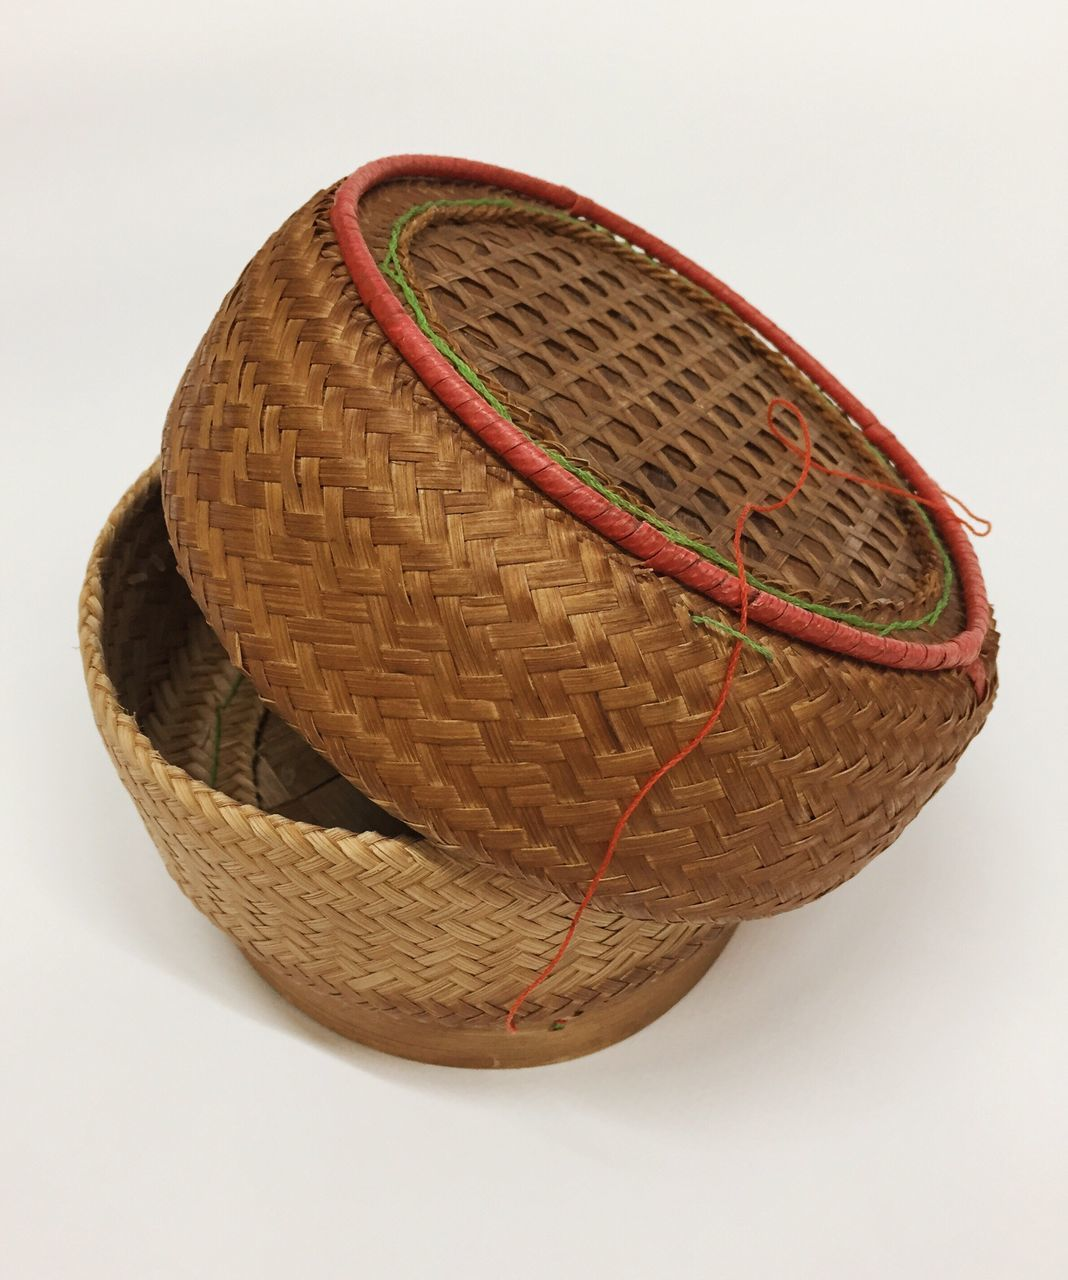 High Angle View Of Wicker Basket Against White Background